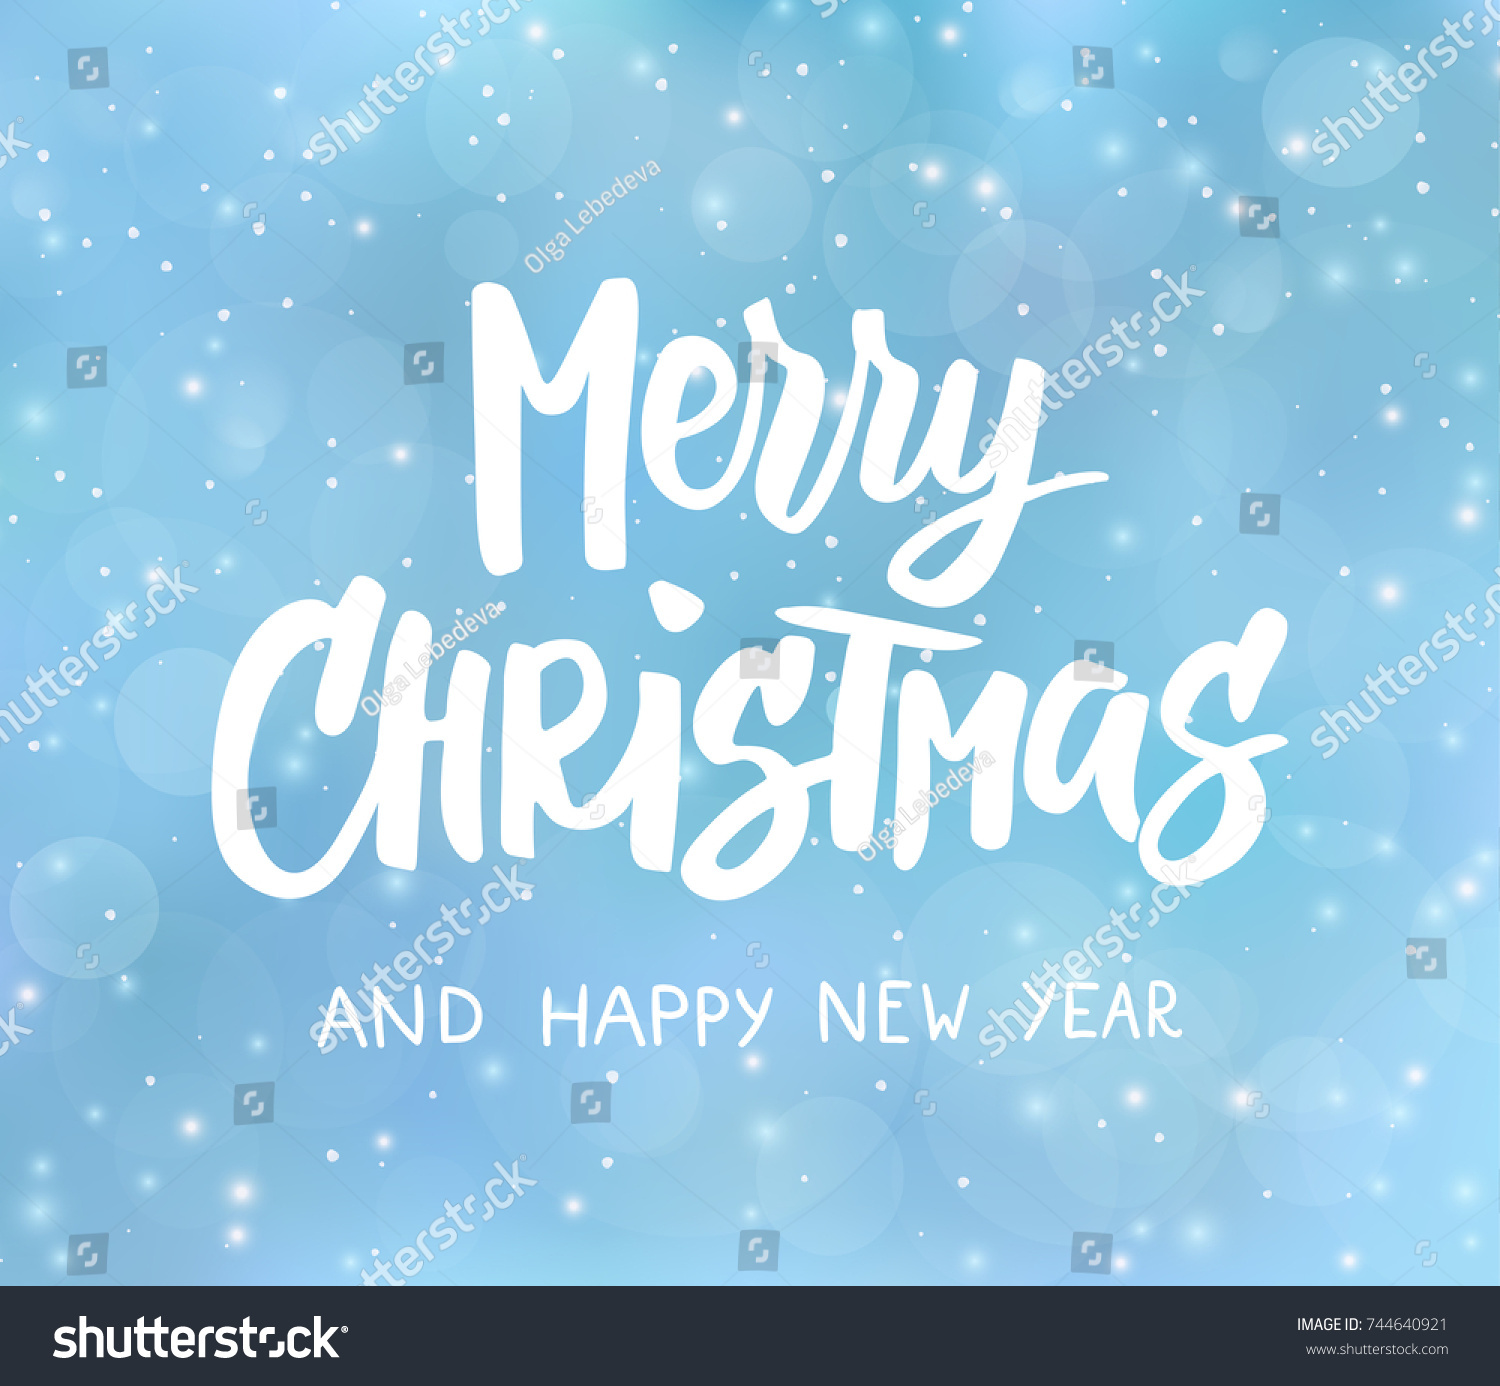 Merry christmas happy new year text stock vector royalty free merry christmas and happy new year text hand drawn lettering holiday greetings quote m4hsunfo